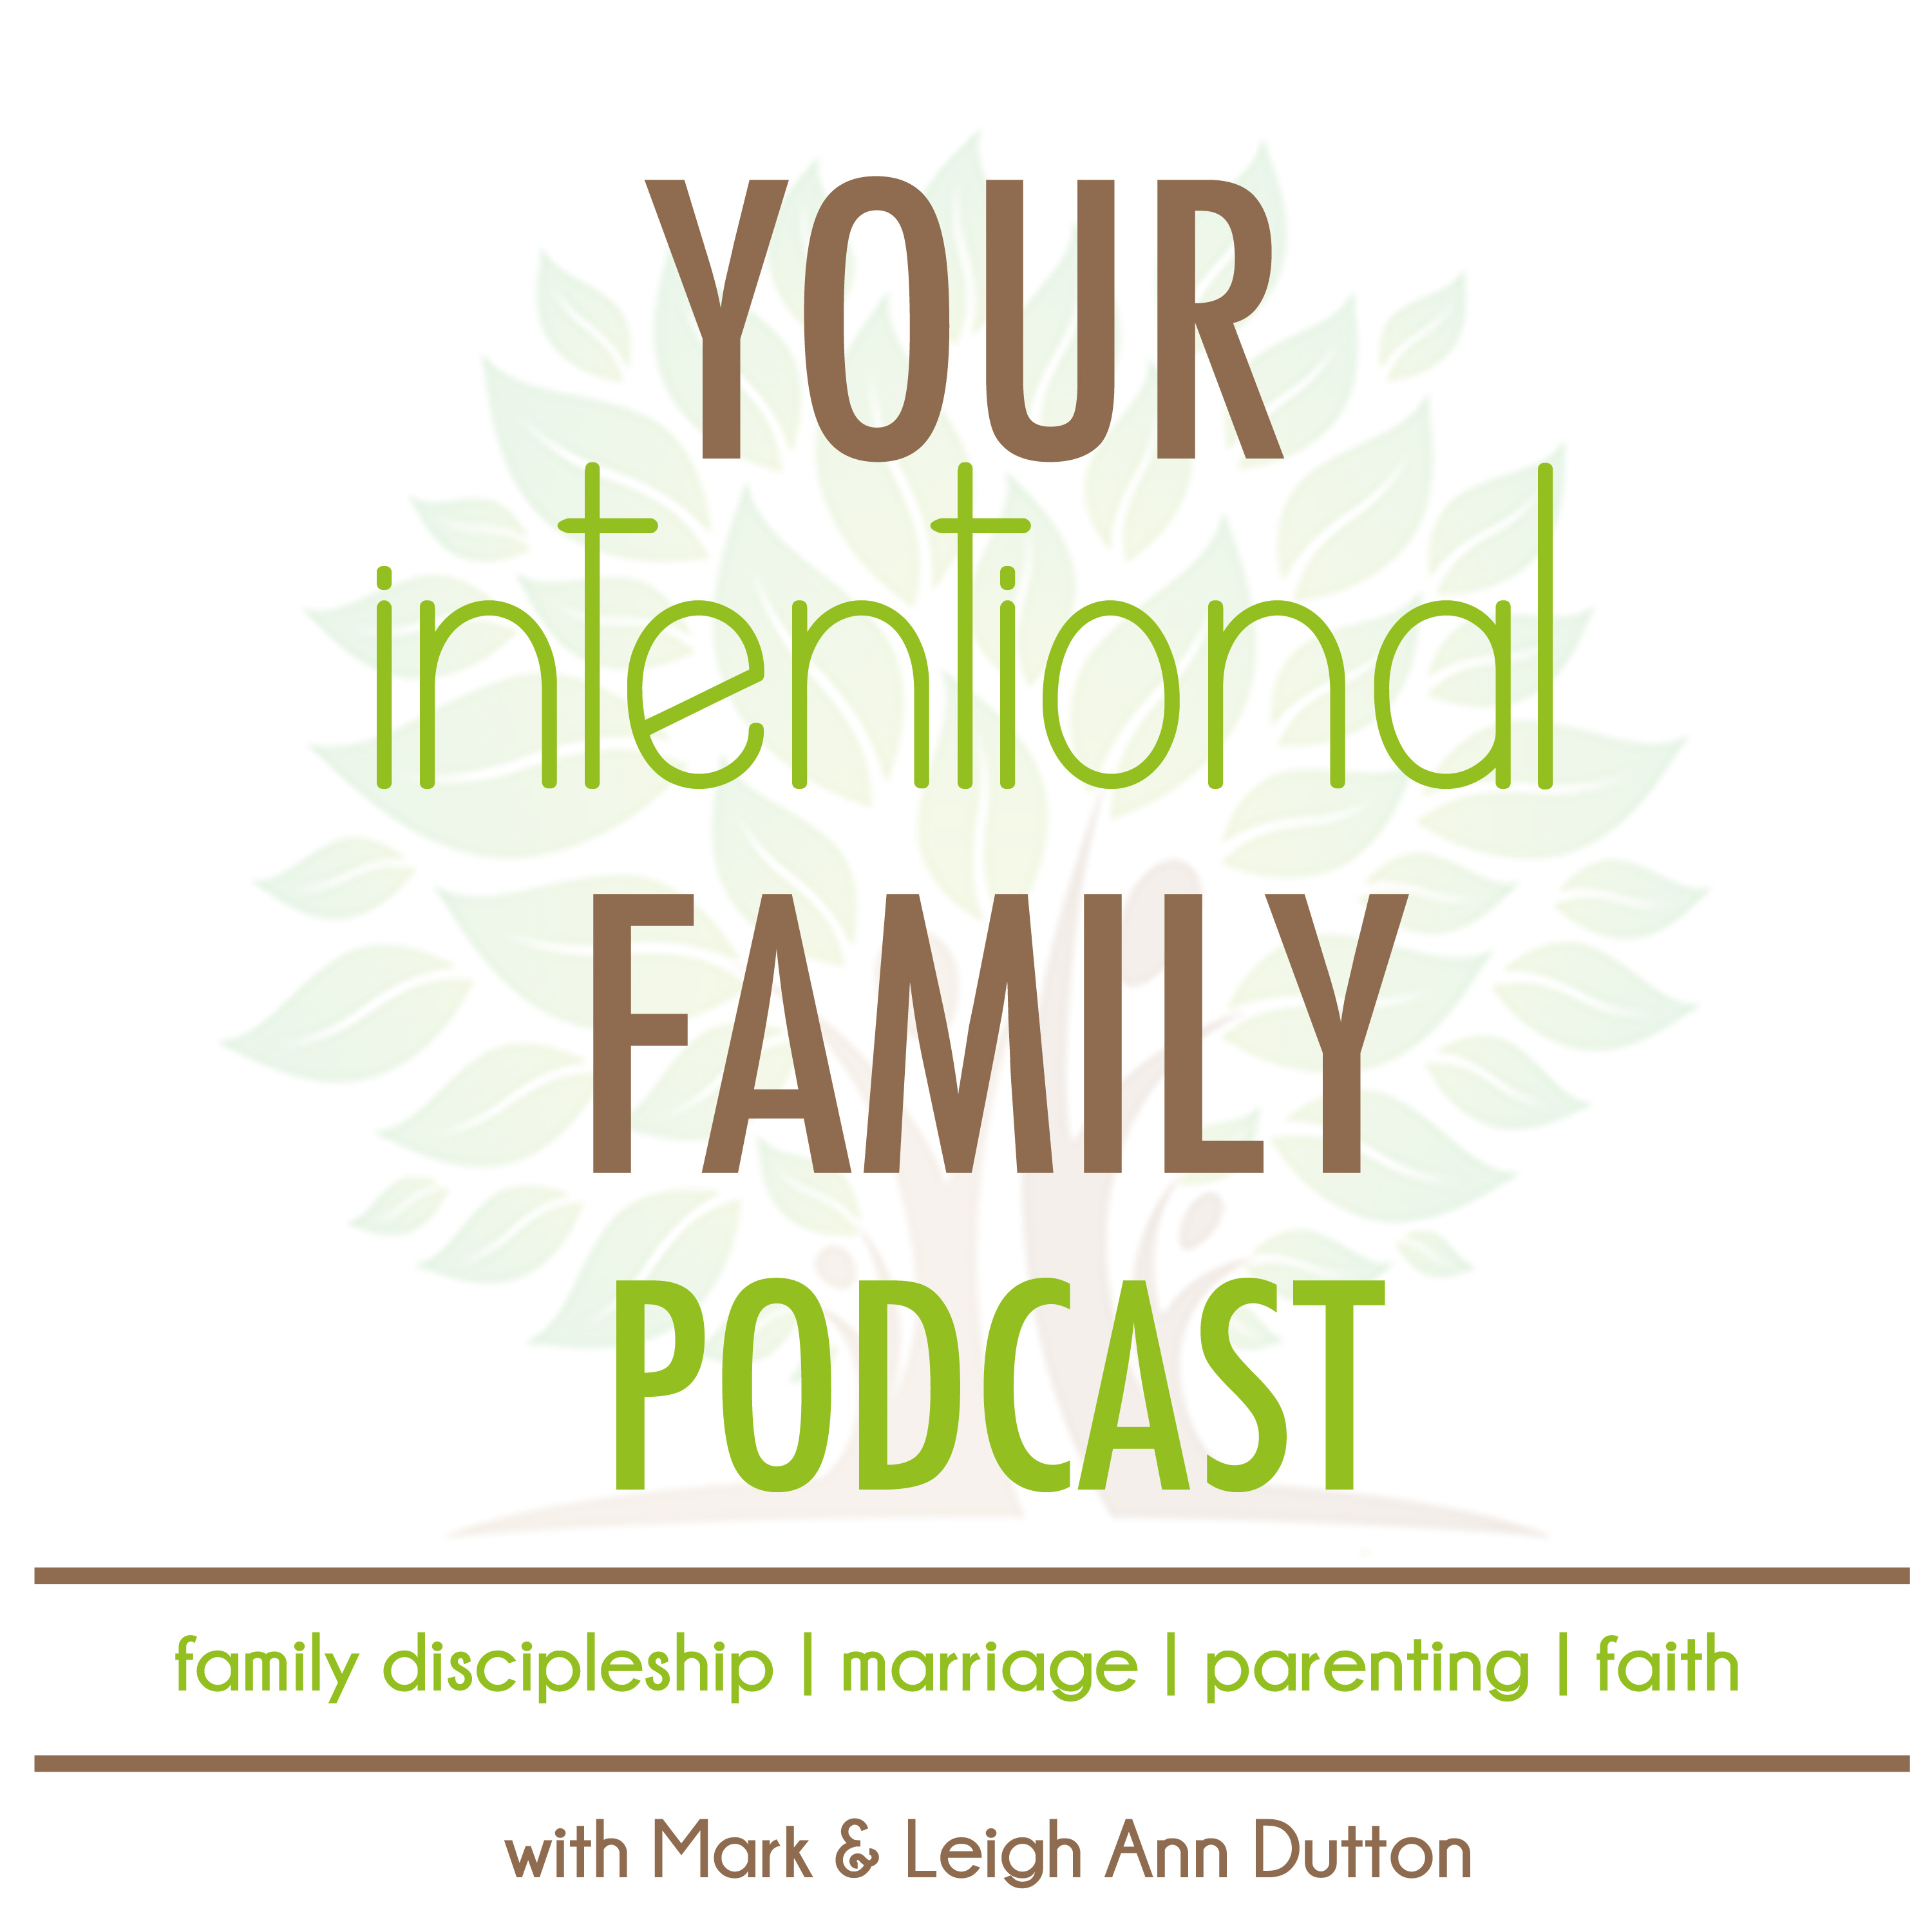 Your Intentional Family Podcast: Evangelizing & Equipping Families to Live for Him